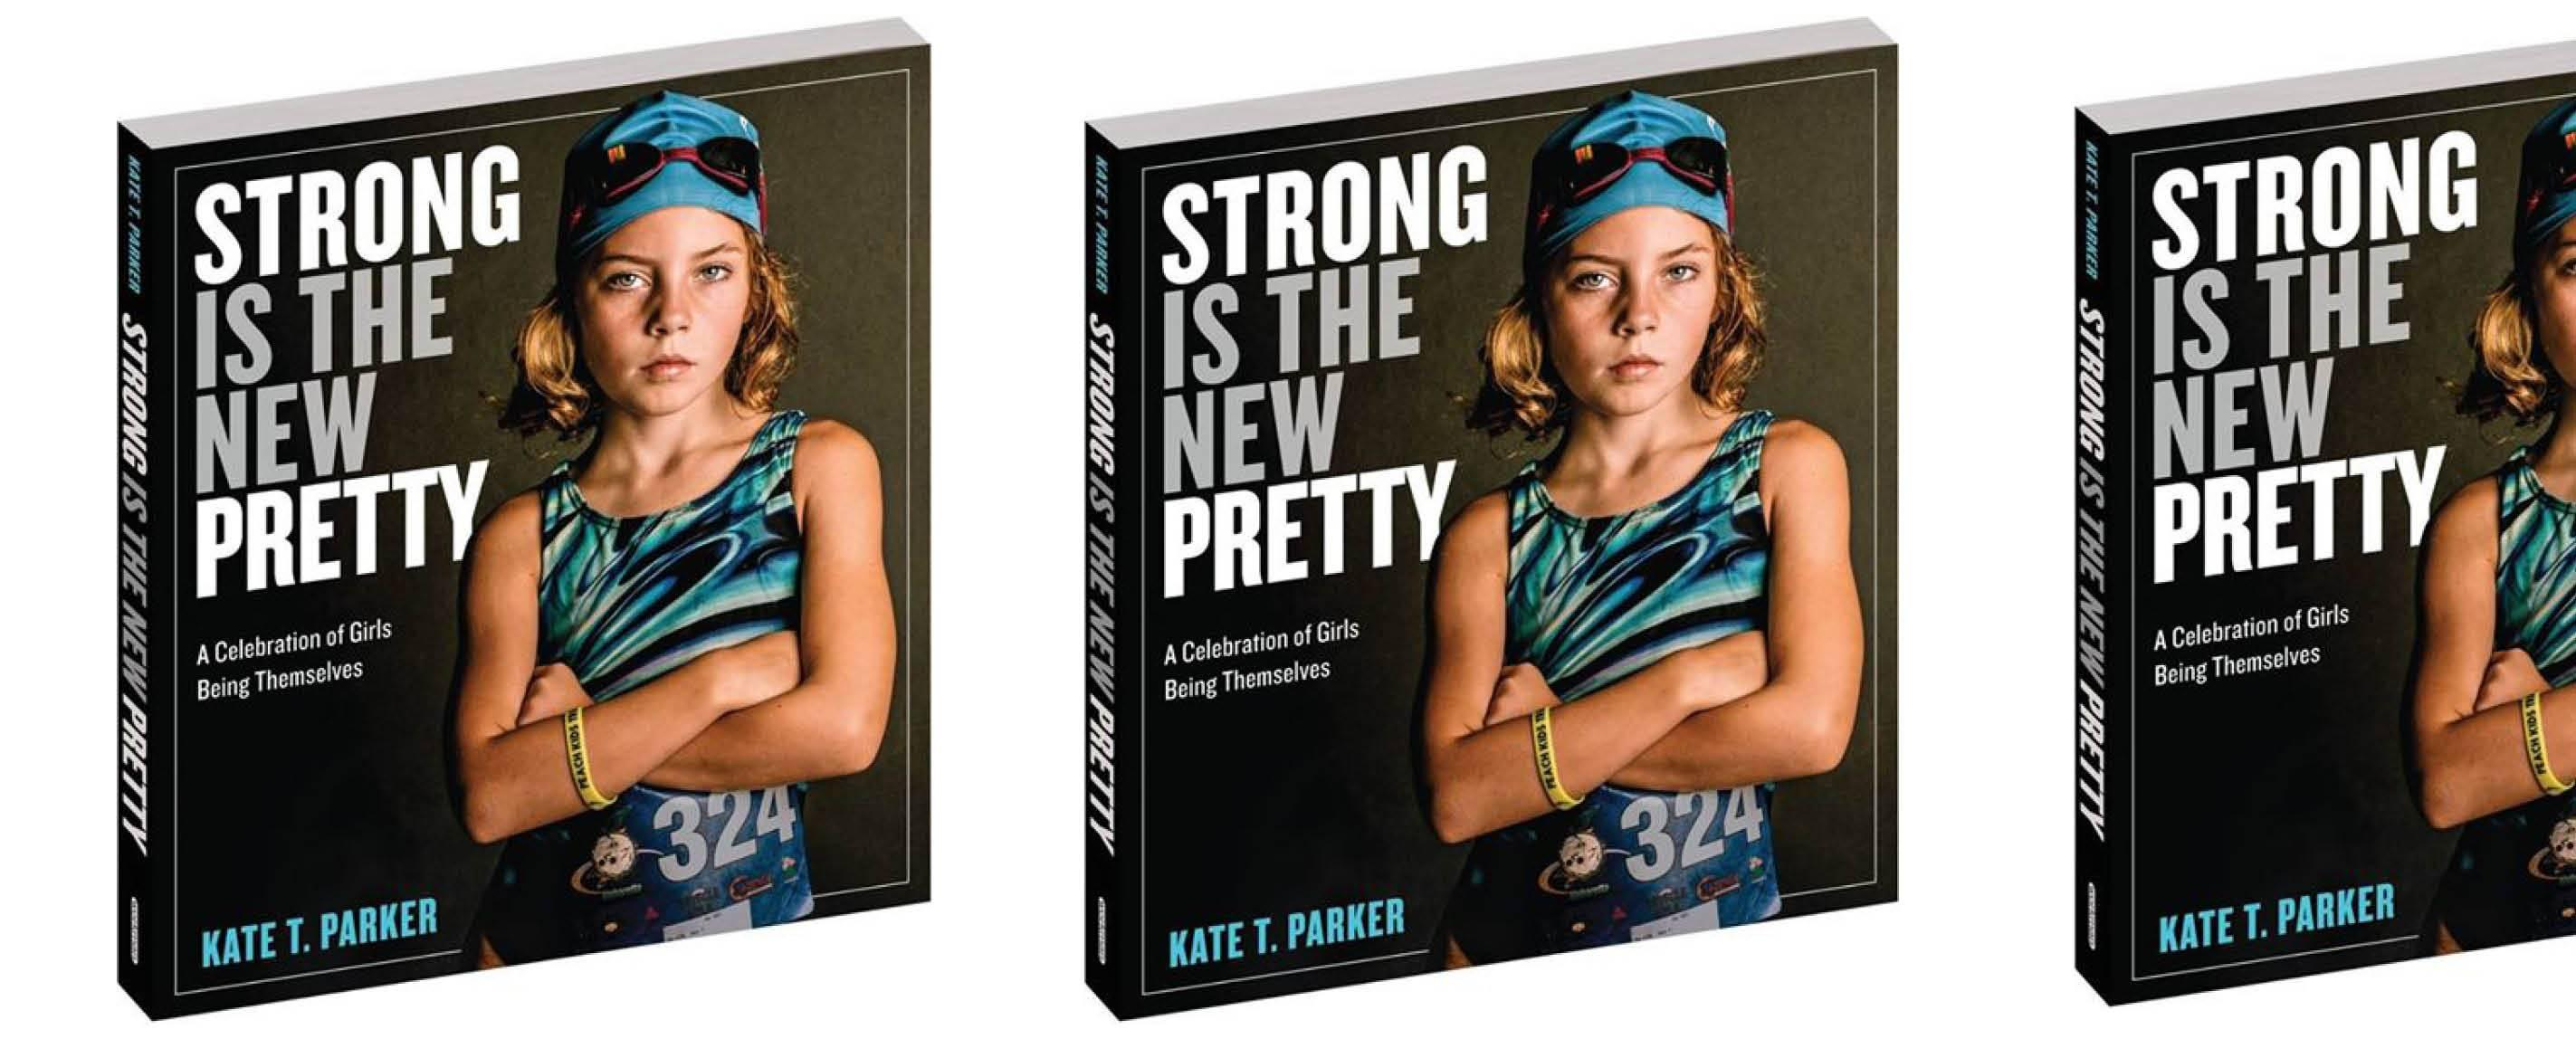 """Strong Is the New Pretty"" Photo Exhibit Open at Fine Art Gallery through March 31"